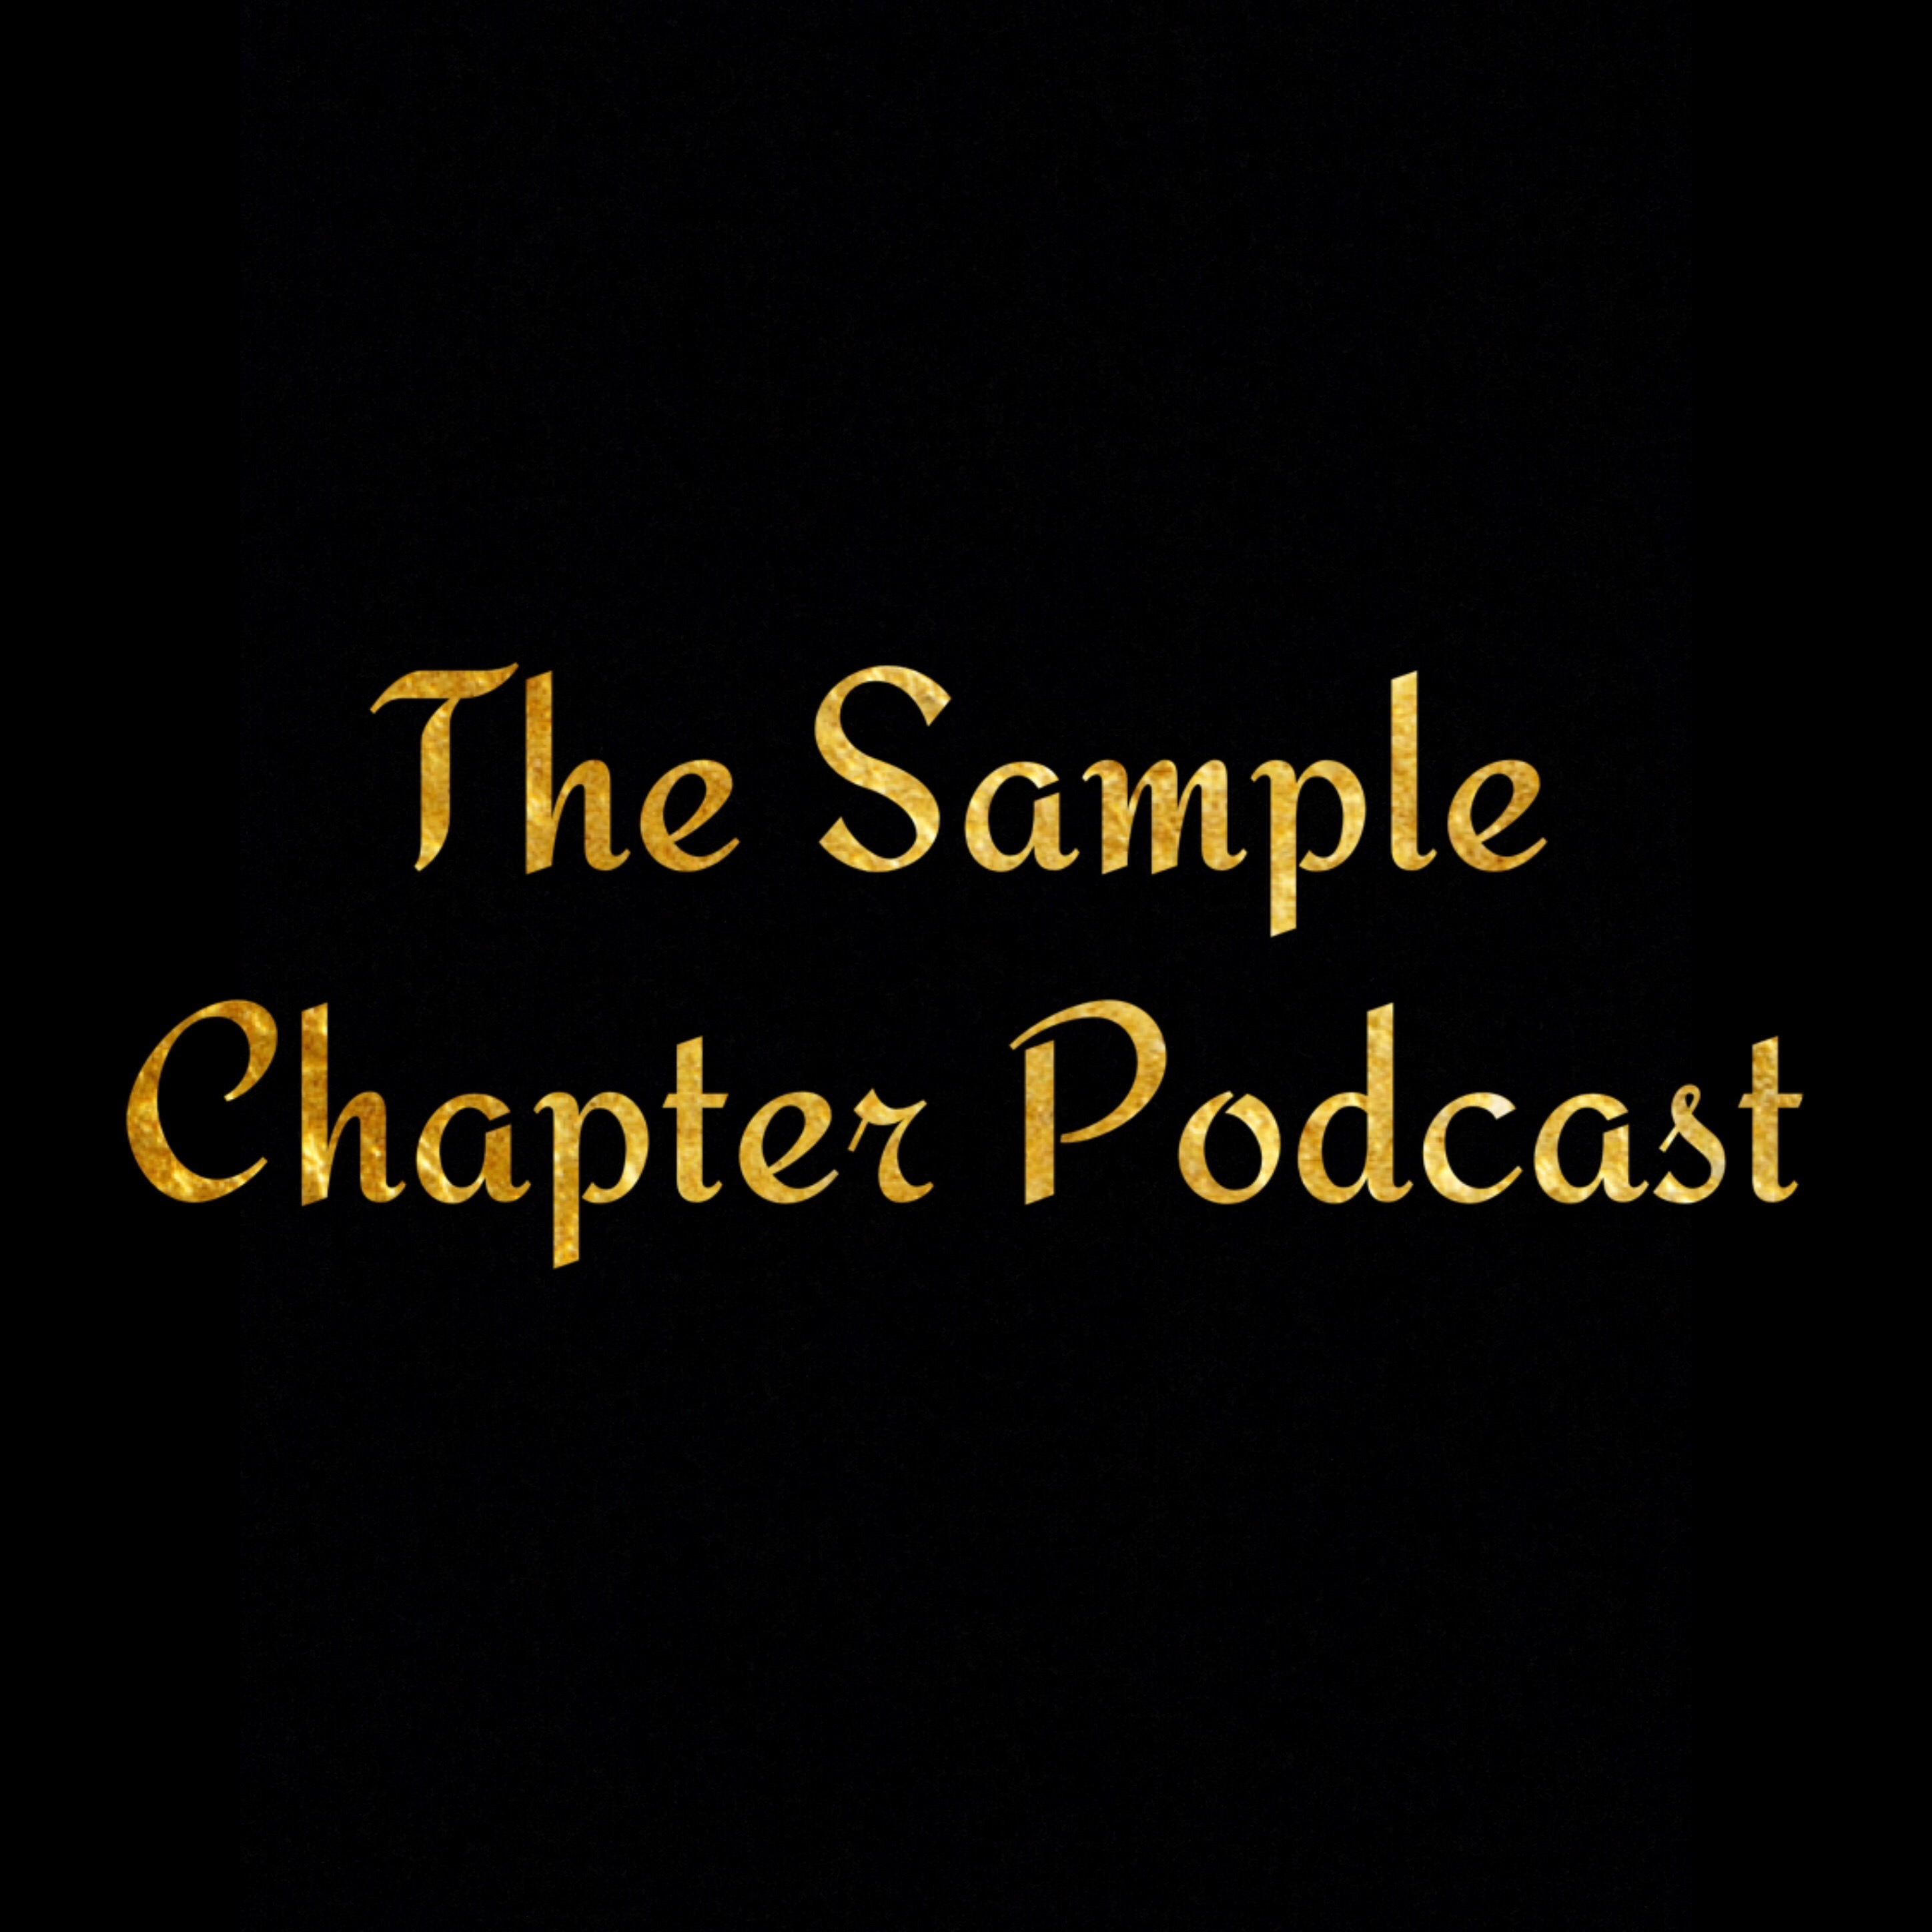 Sample Chapter Podcast